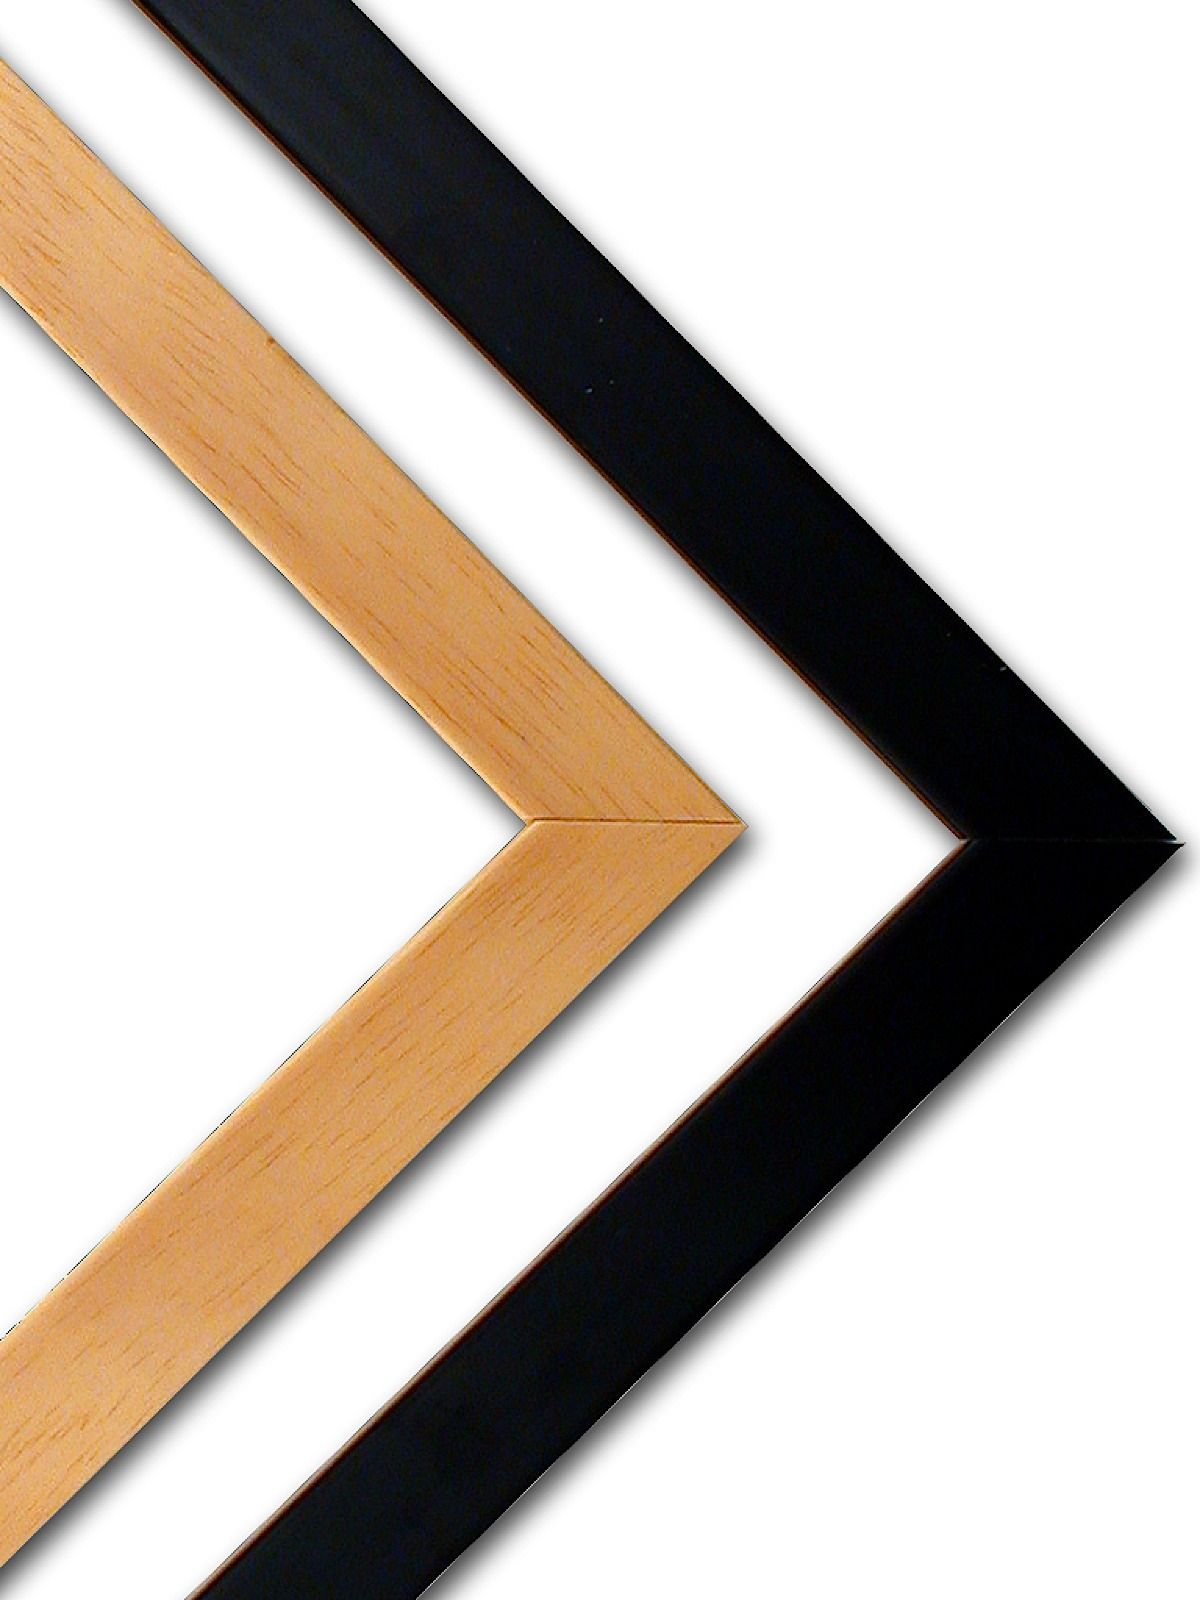 framing #kit - These Wood Frame Kits by Nielsen Bainbridge come in ...